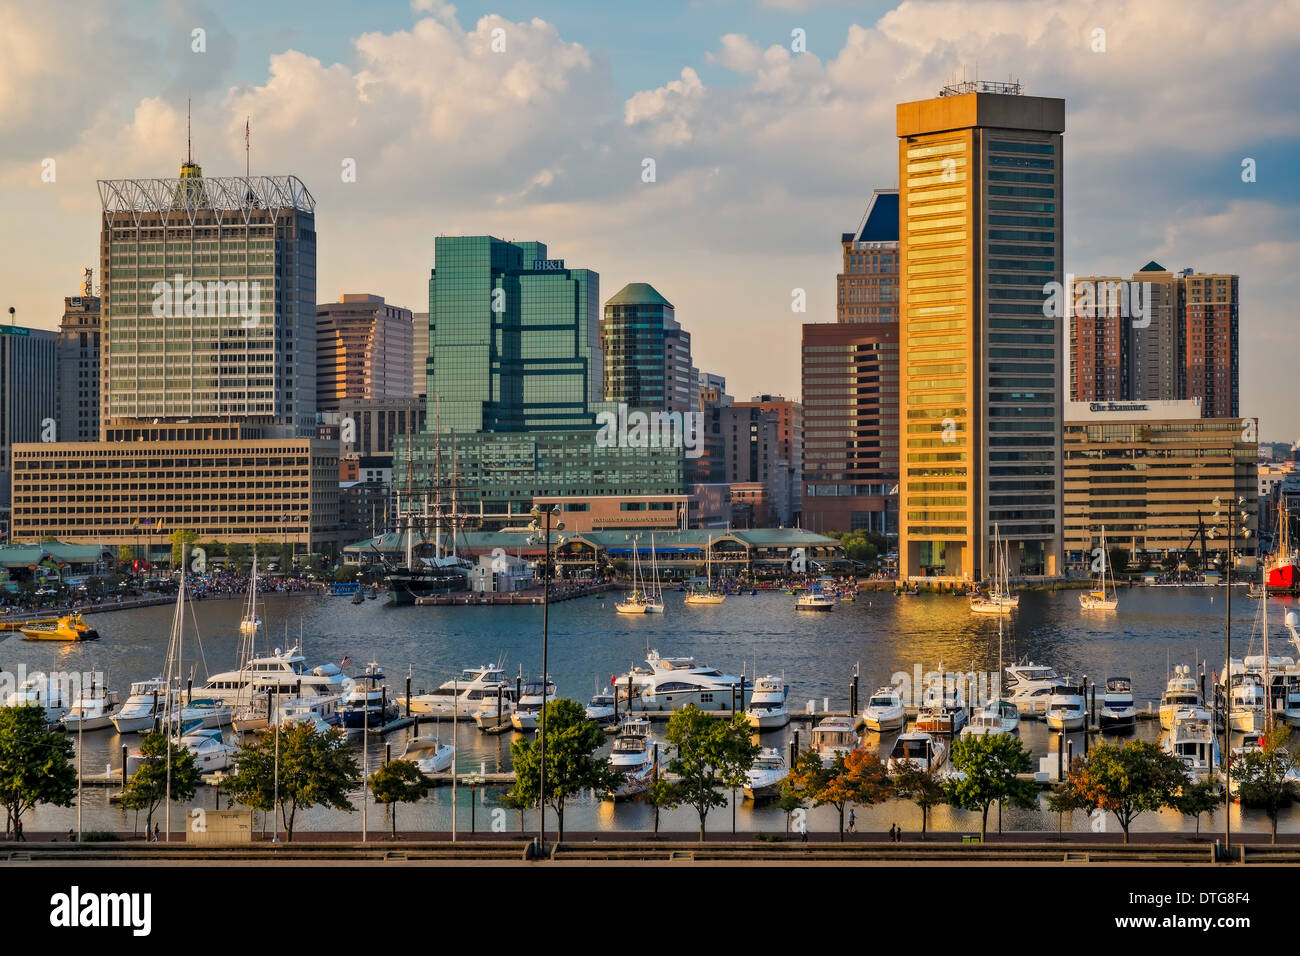 The Baltimore Inner Harbor Skyline shortly before sunset, as viewed from Federal Hill in Baltimore, Maryland. - Stock Image